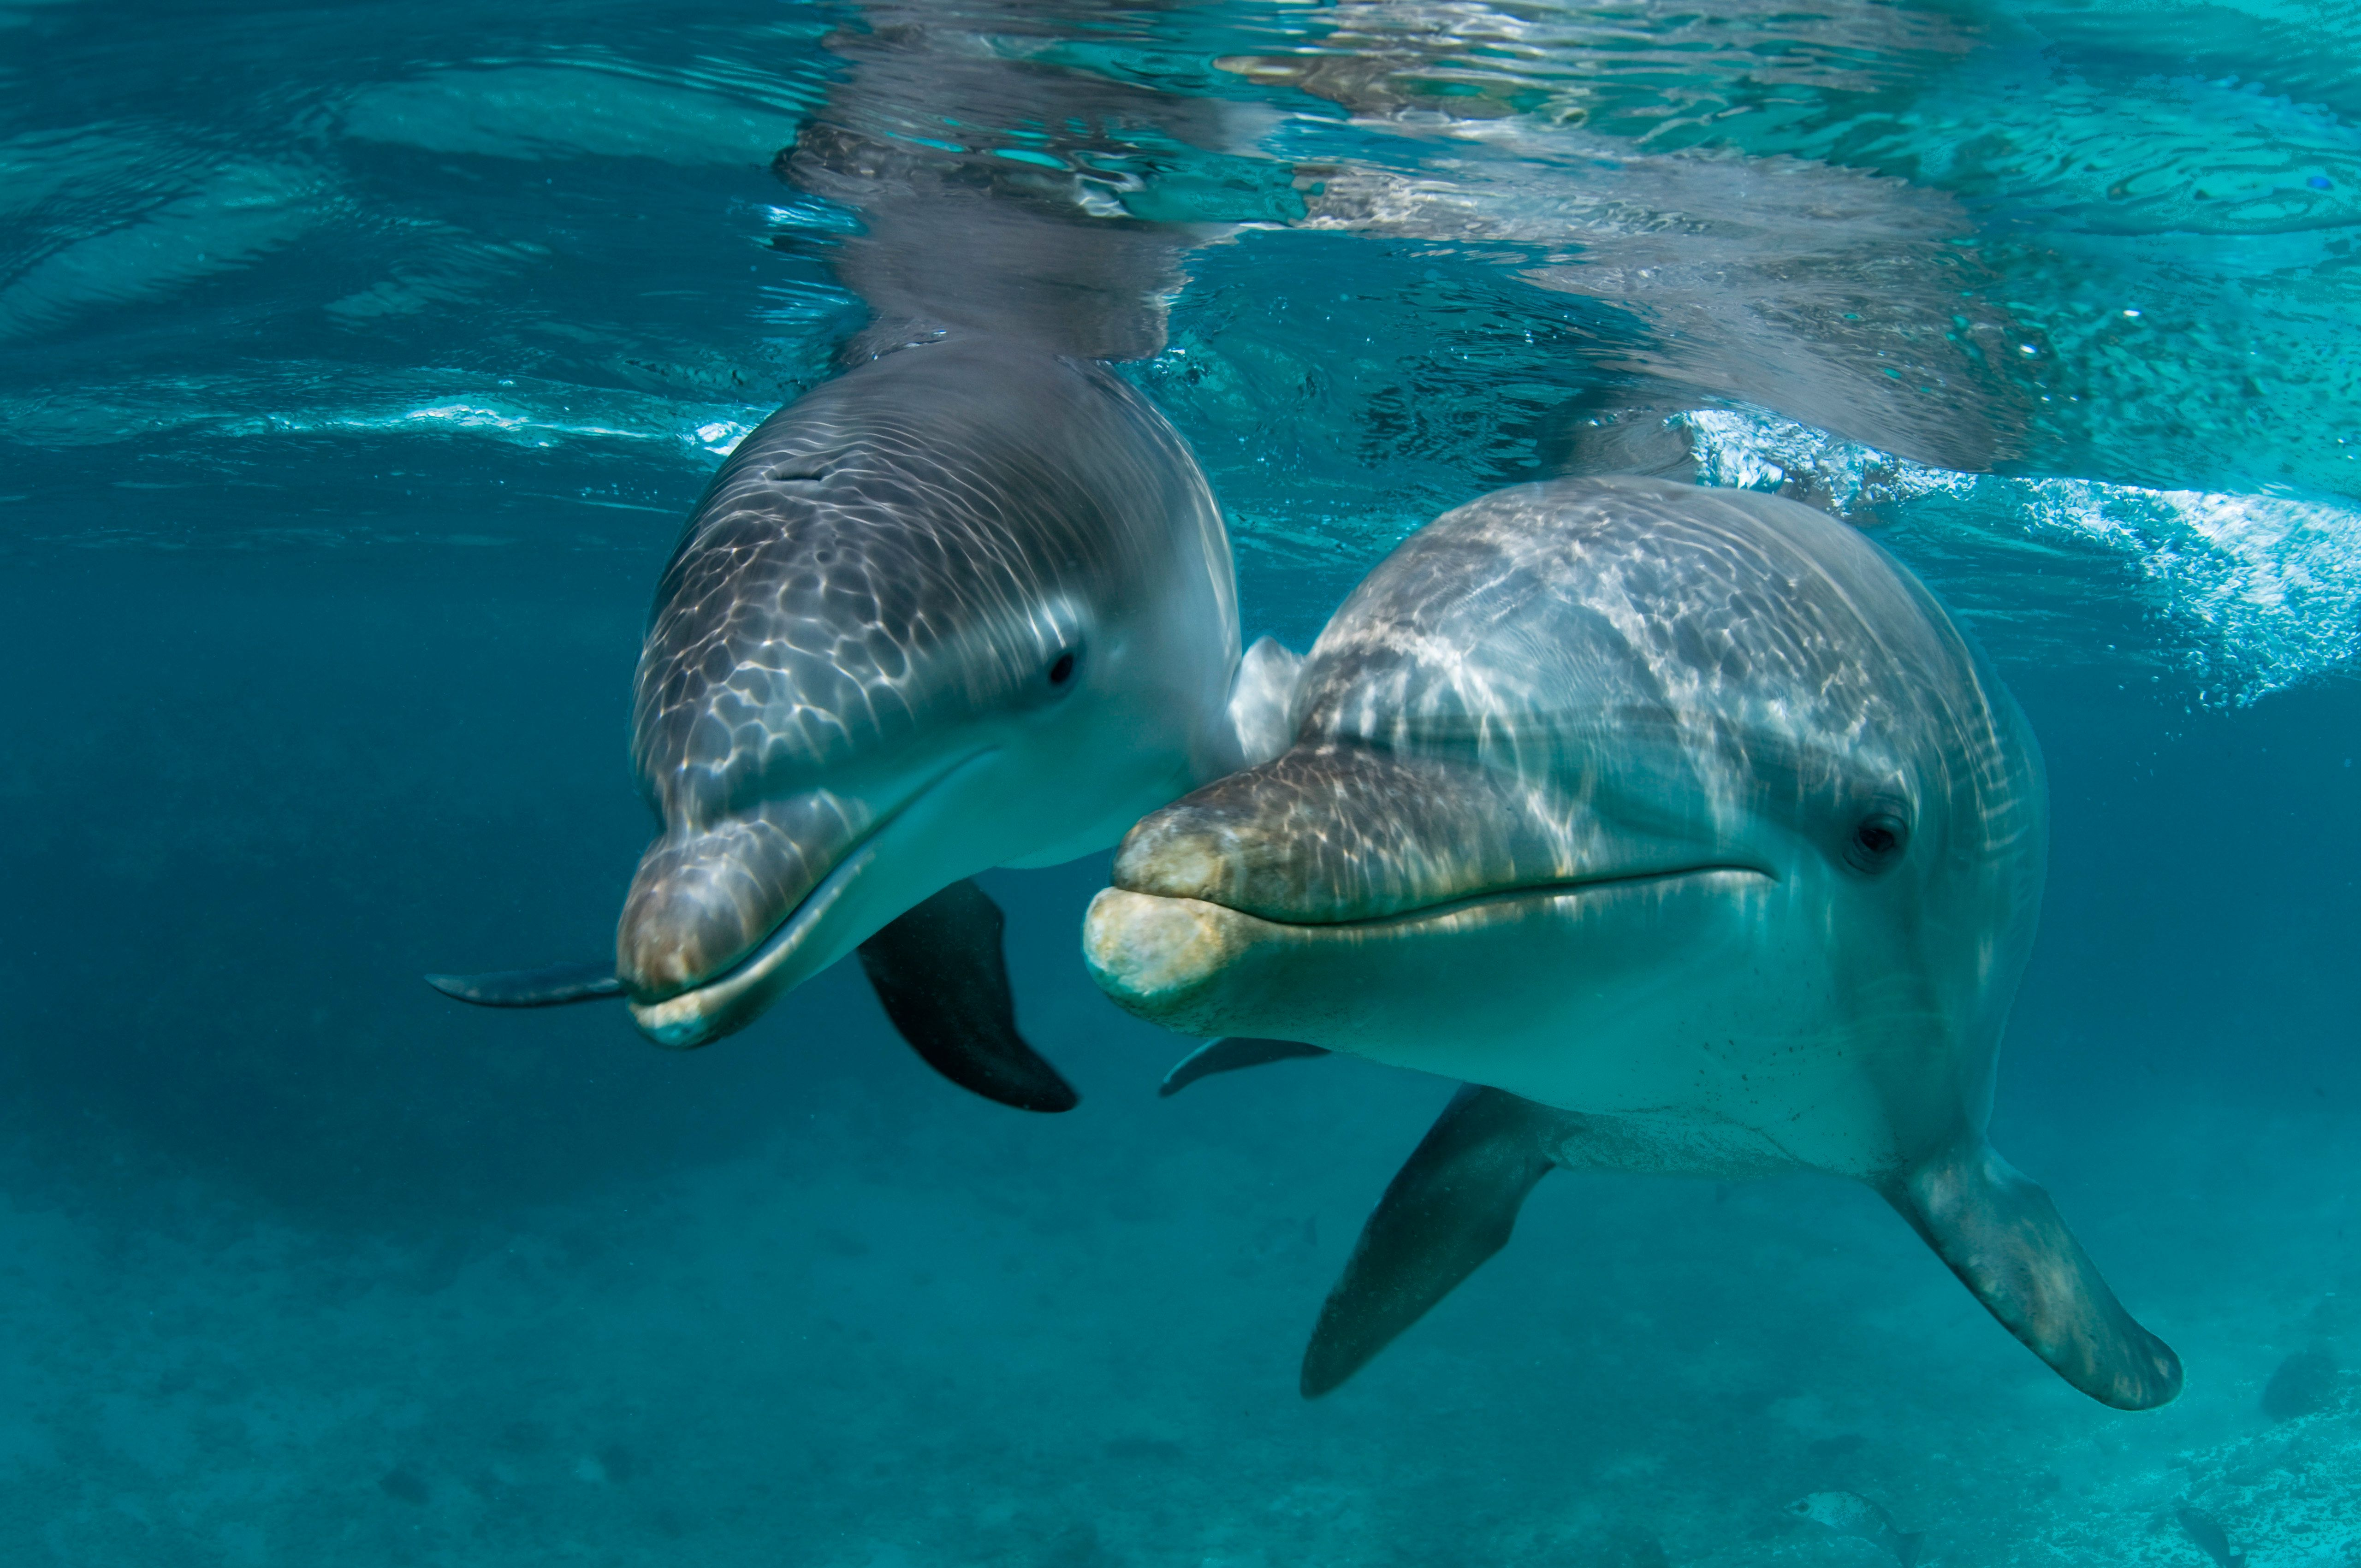 A mother Atlantic bottlenose dolphin and her offspring in